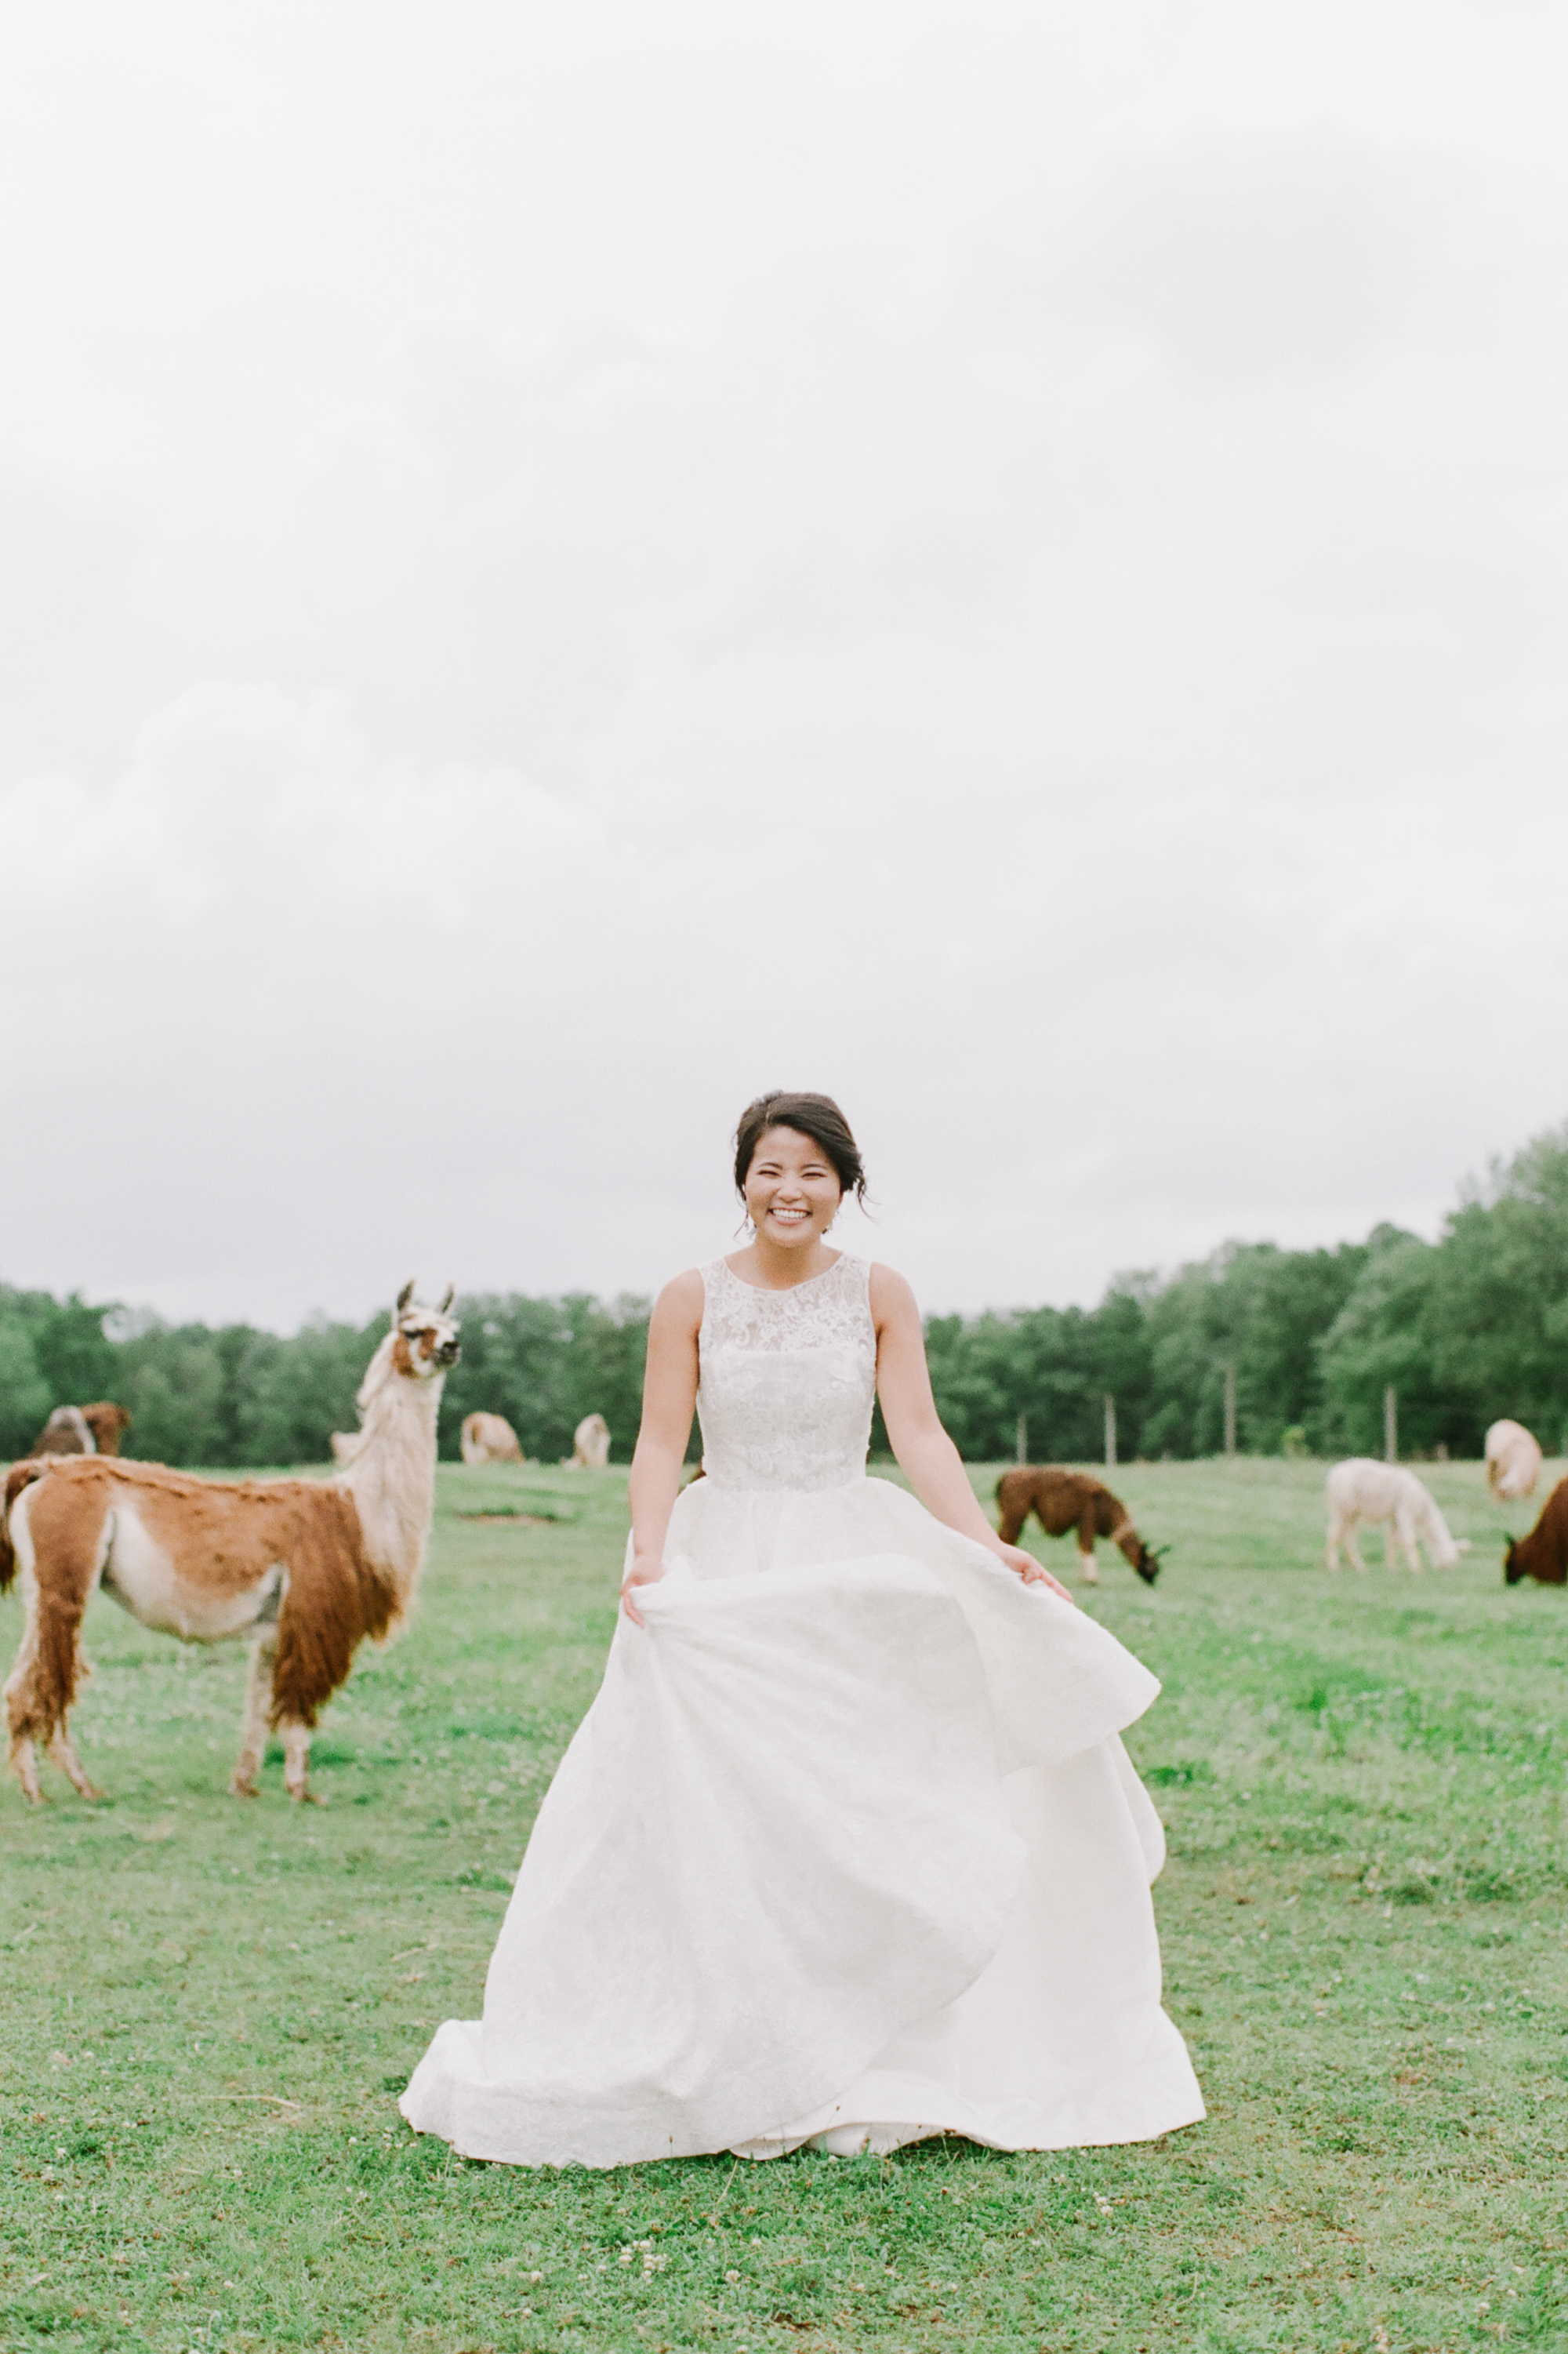 nj_alpaca-farm_wedding_inspiration-77.jpg